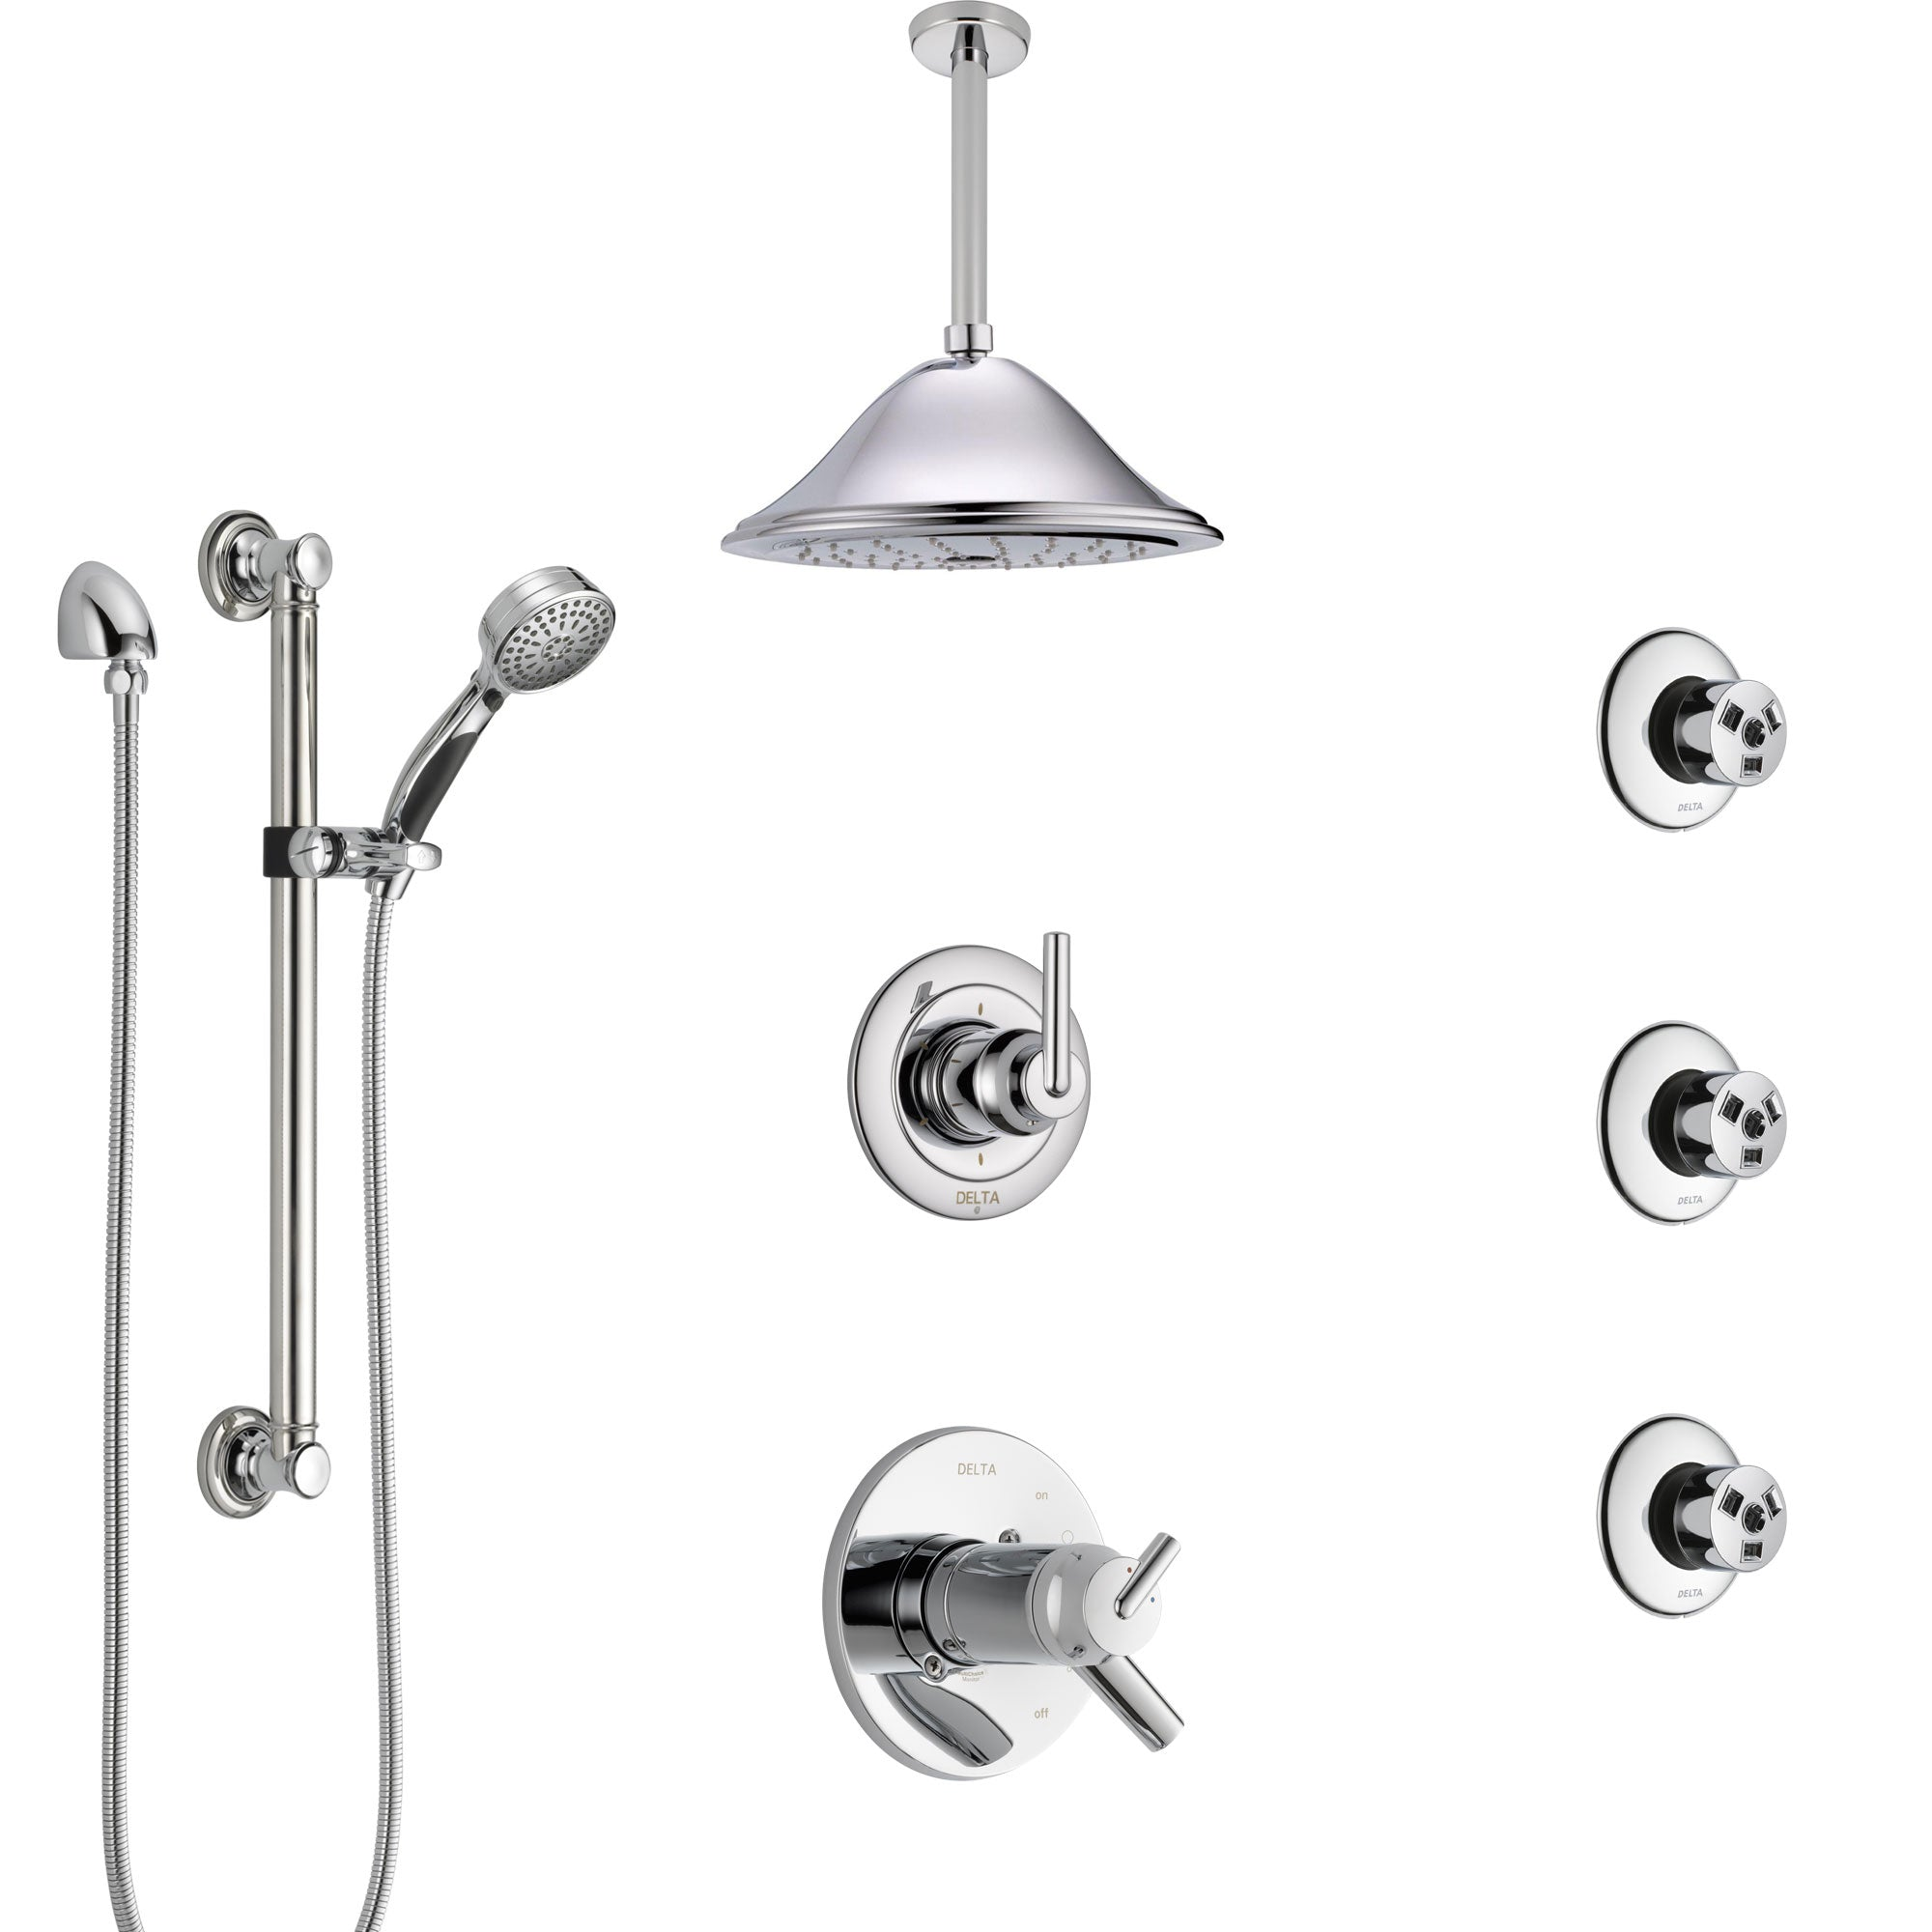 Delta Trinsic Chrome Shower System with Dual Thermostatic Control, Diverter, Ceiling Showerhead, 3 Body Sprays, and Grab Bar Hand Shower SS17T5914